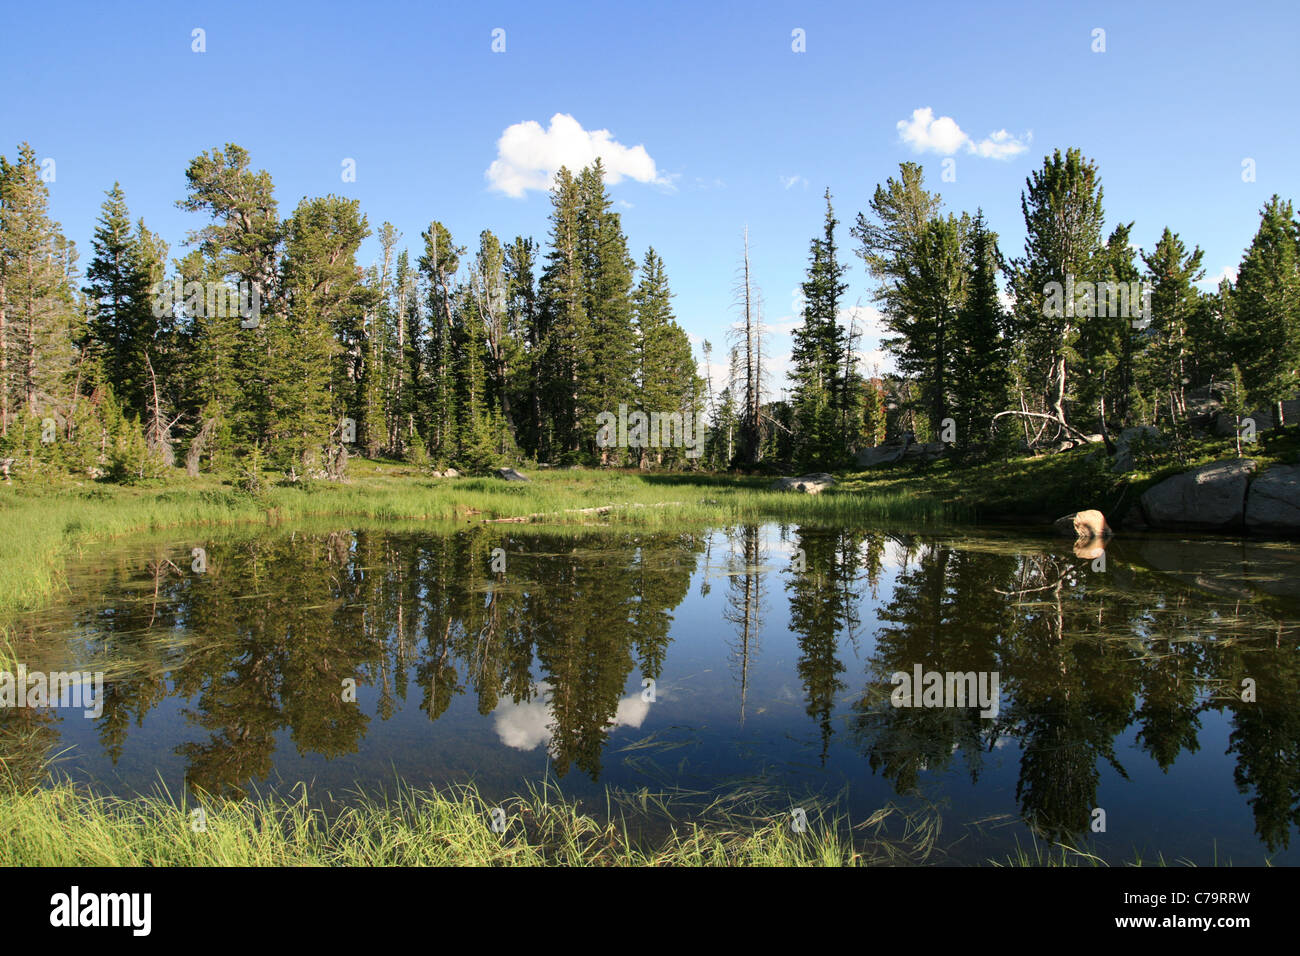 wilderness lake with reflection of pine trees - Stock Image